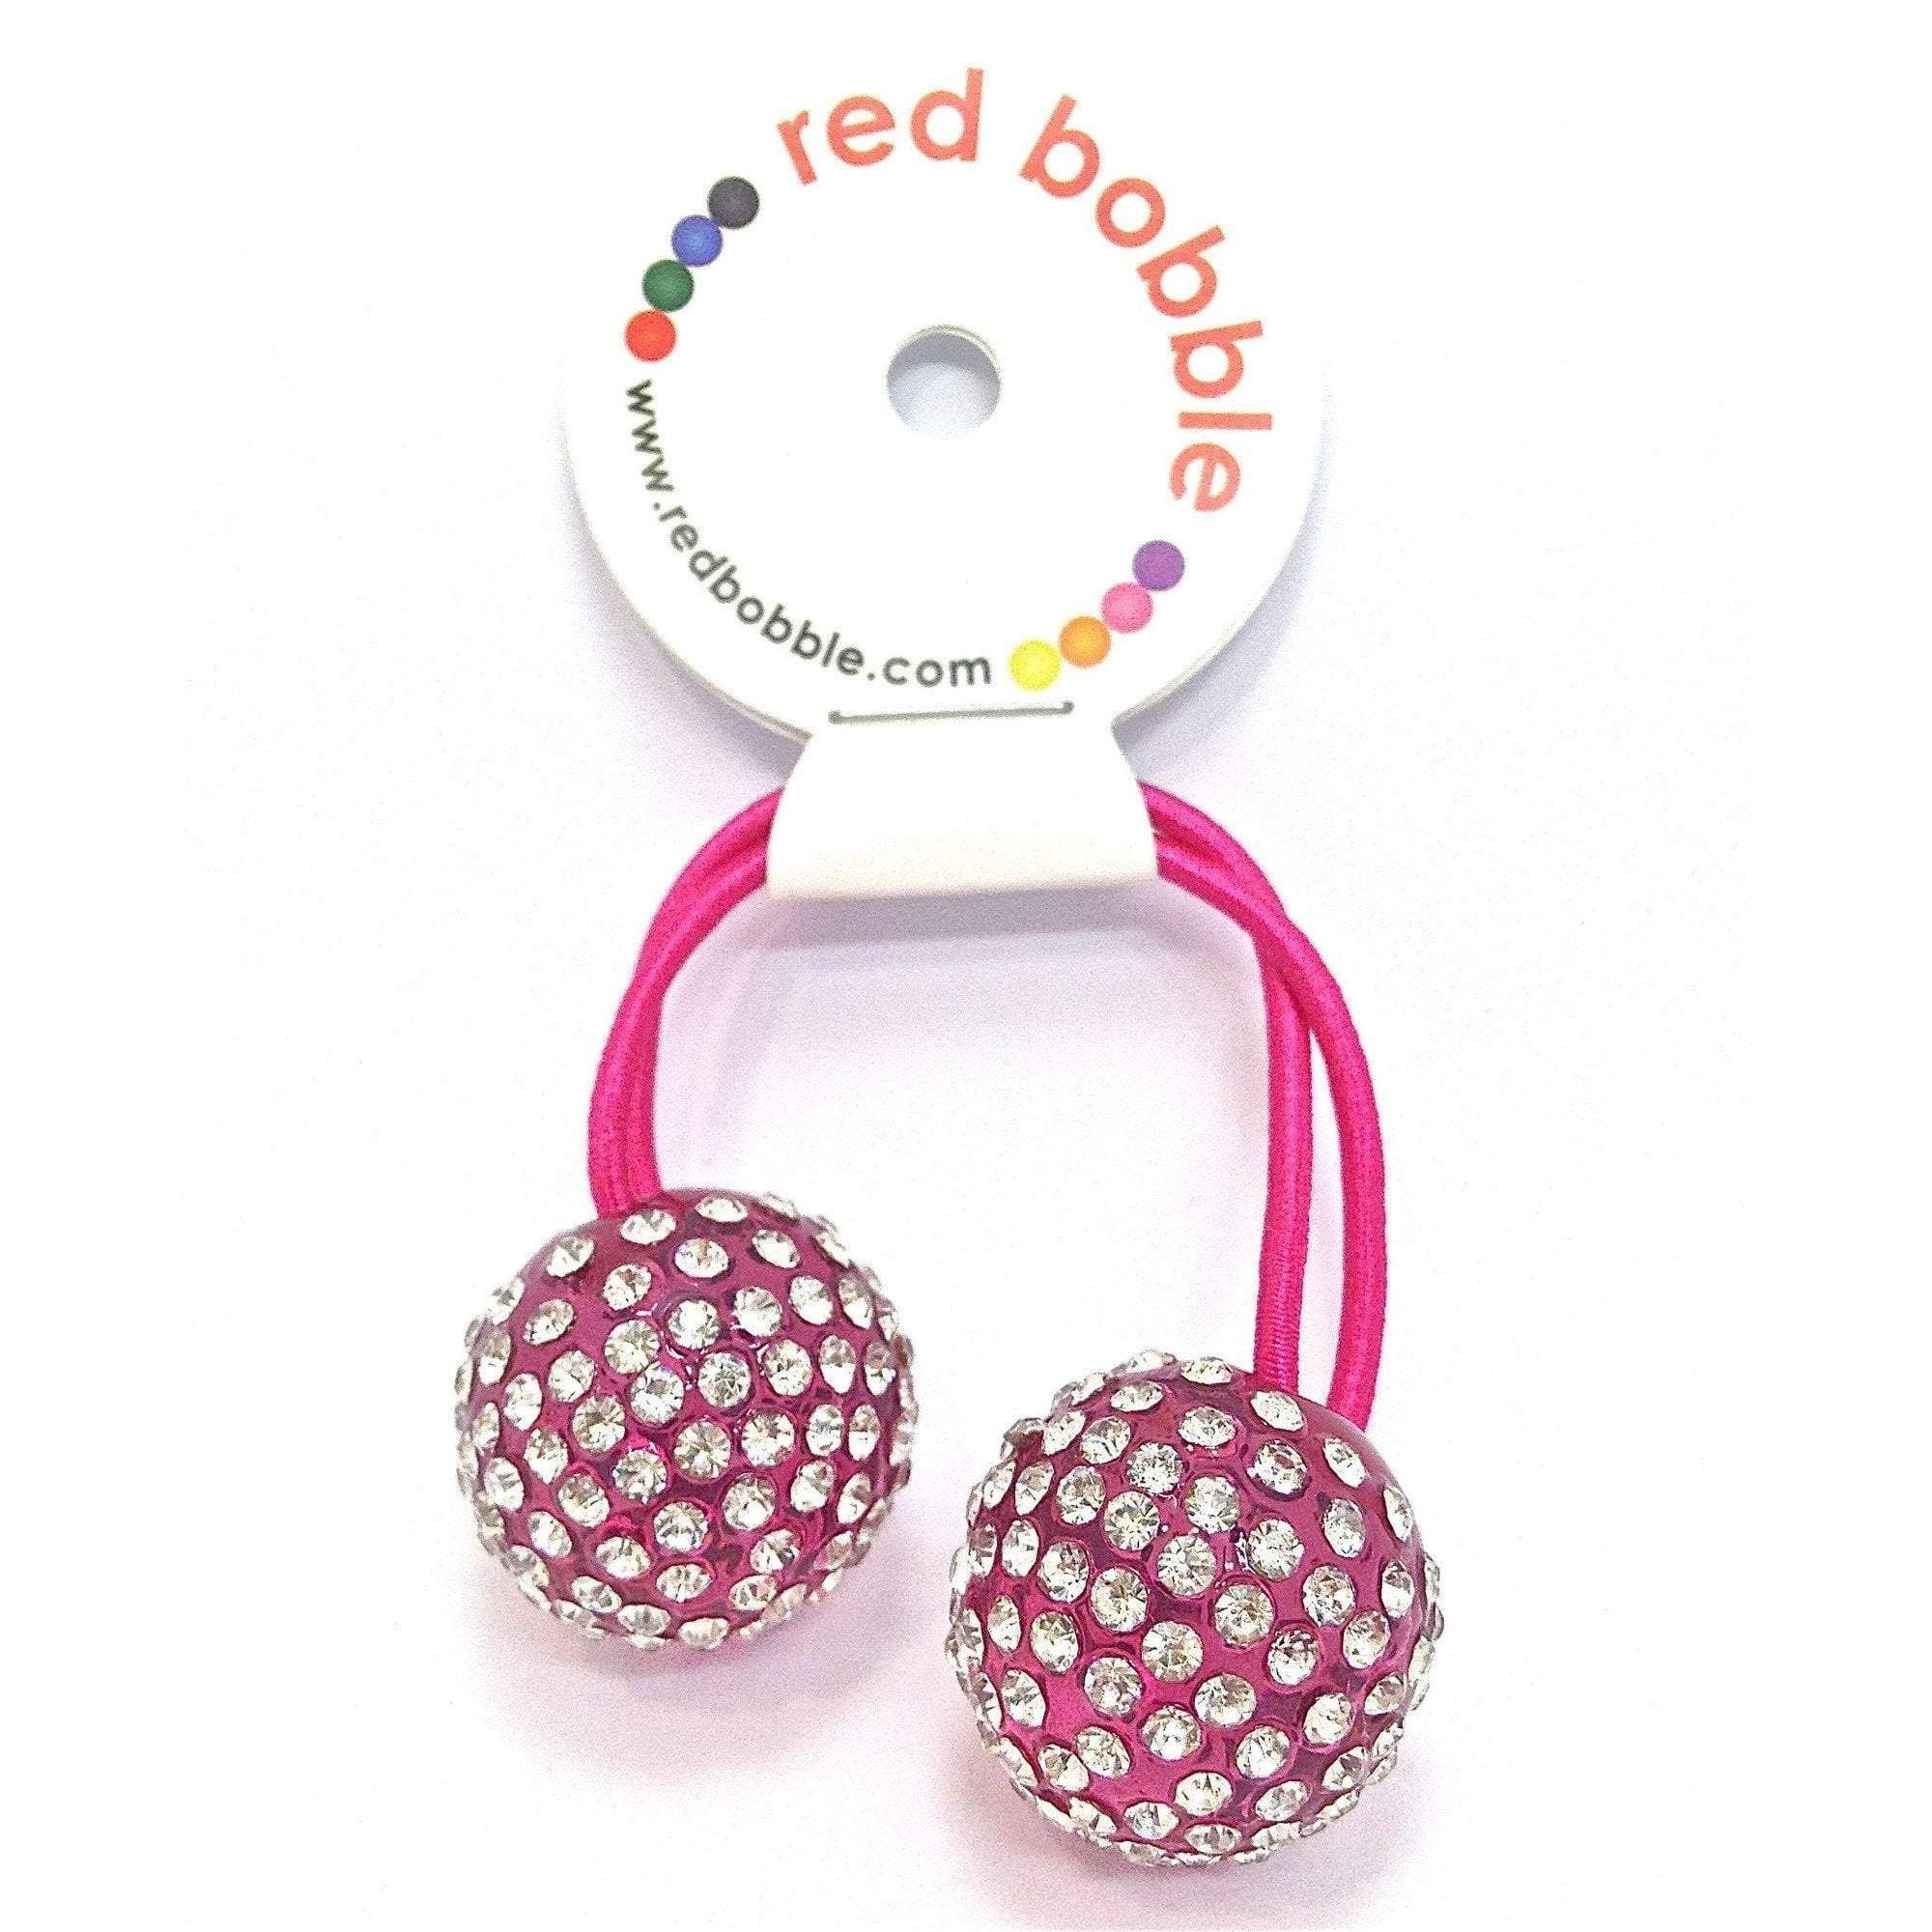 Twinkle Bobble Pink - Red Bobble - Hugs For Kids